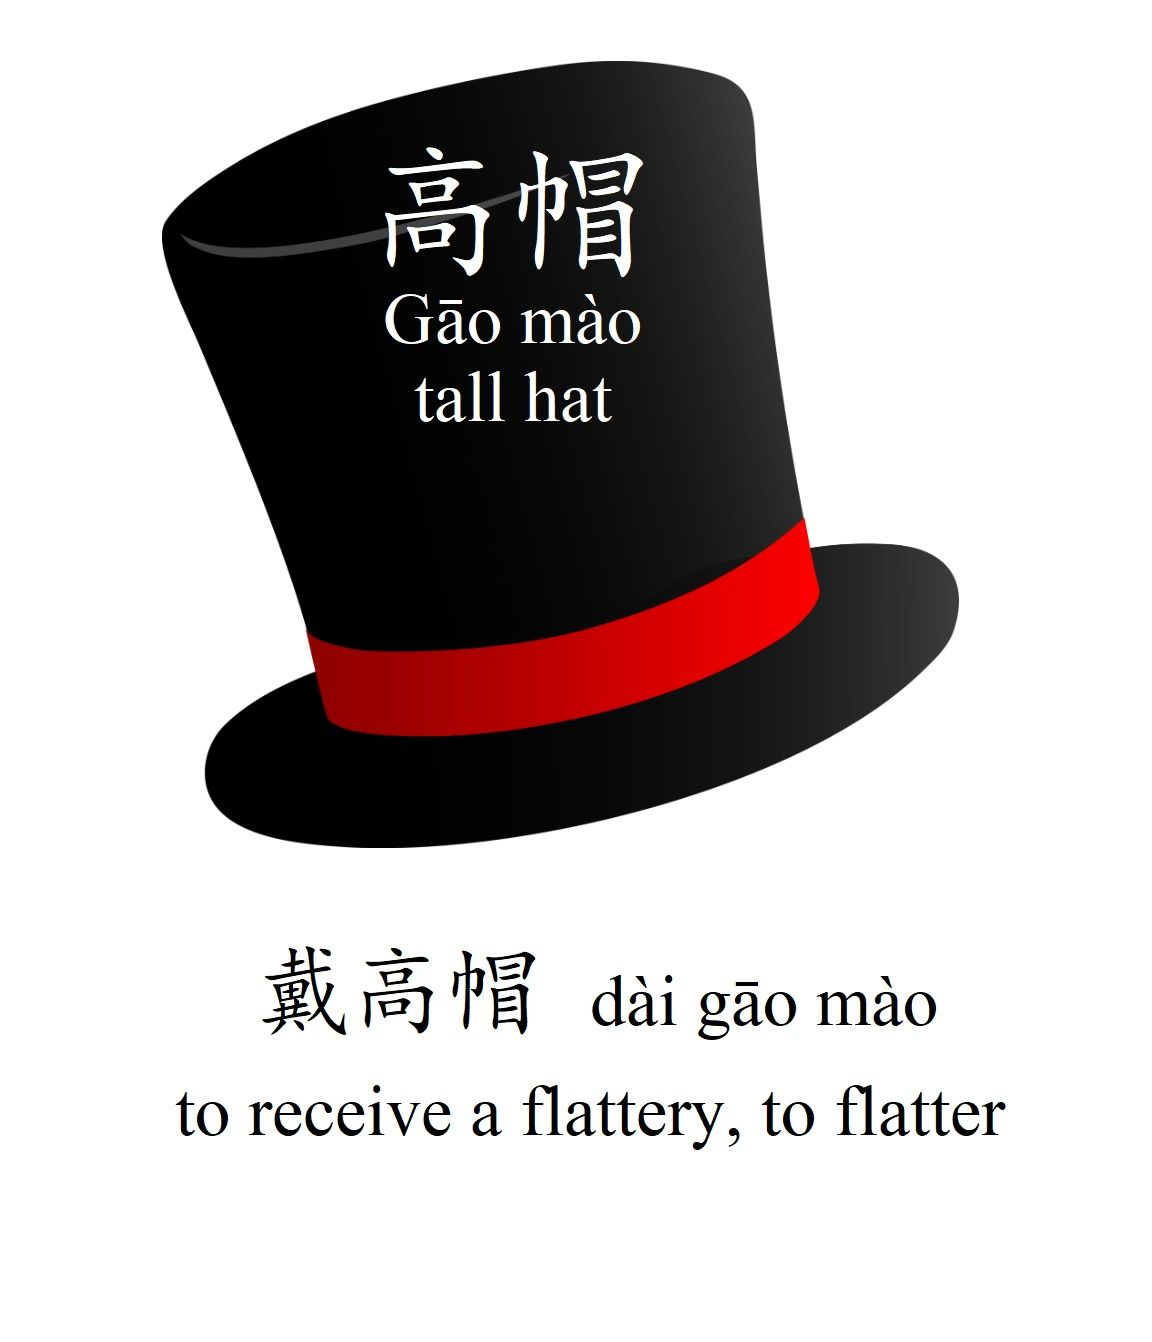 30 Mandarin Chinese Vocabularies On Clothes You Should Know Mandarin Chinese Chinese Vocabulary Learn Chinese